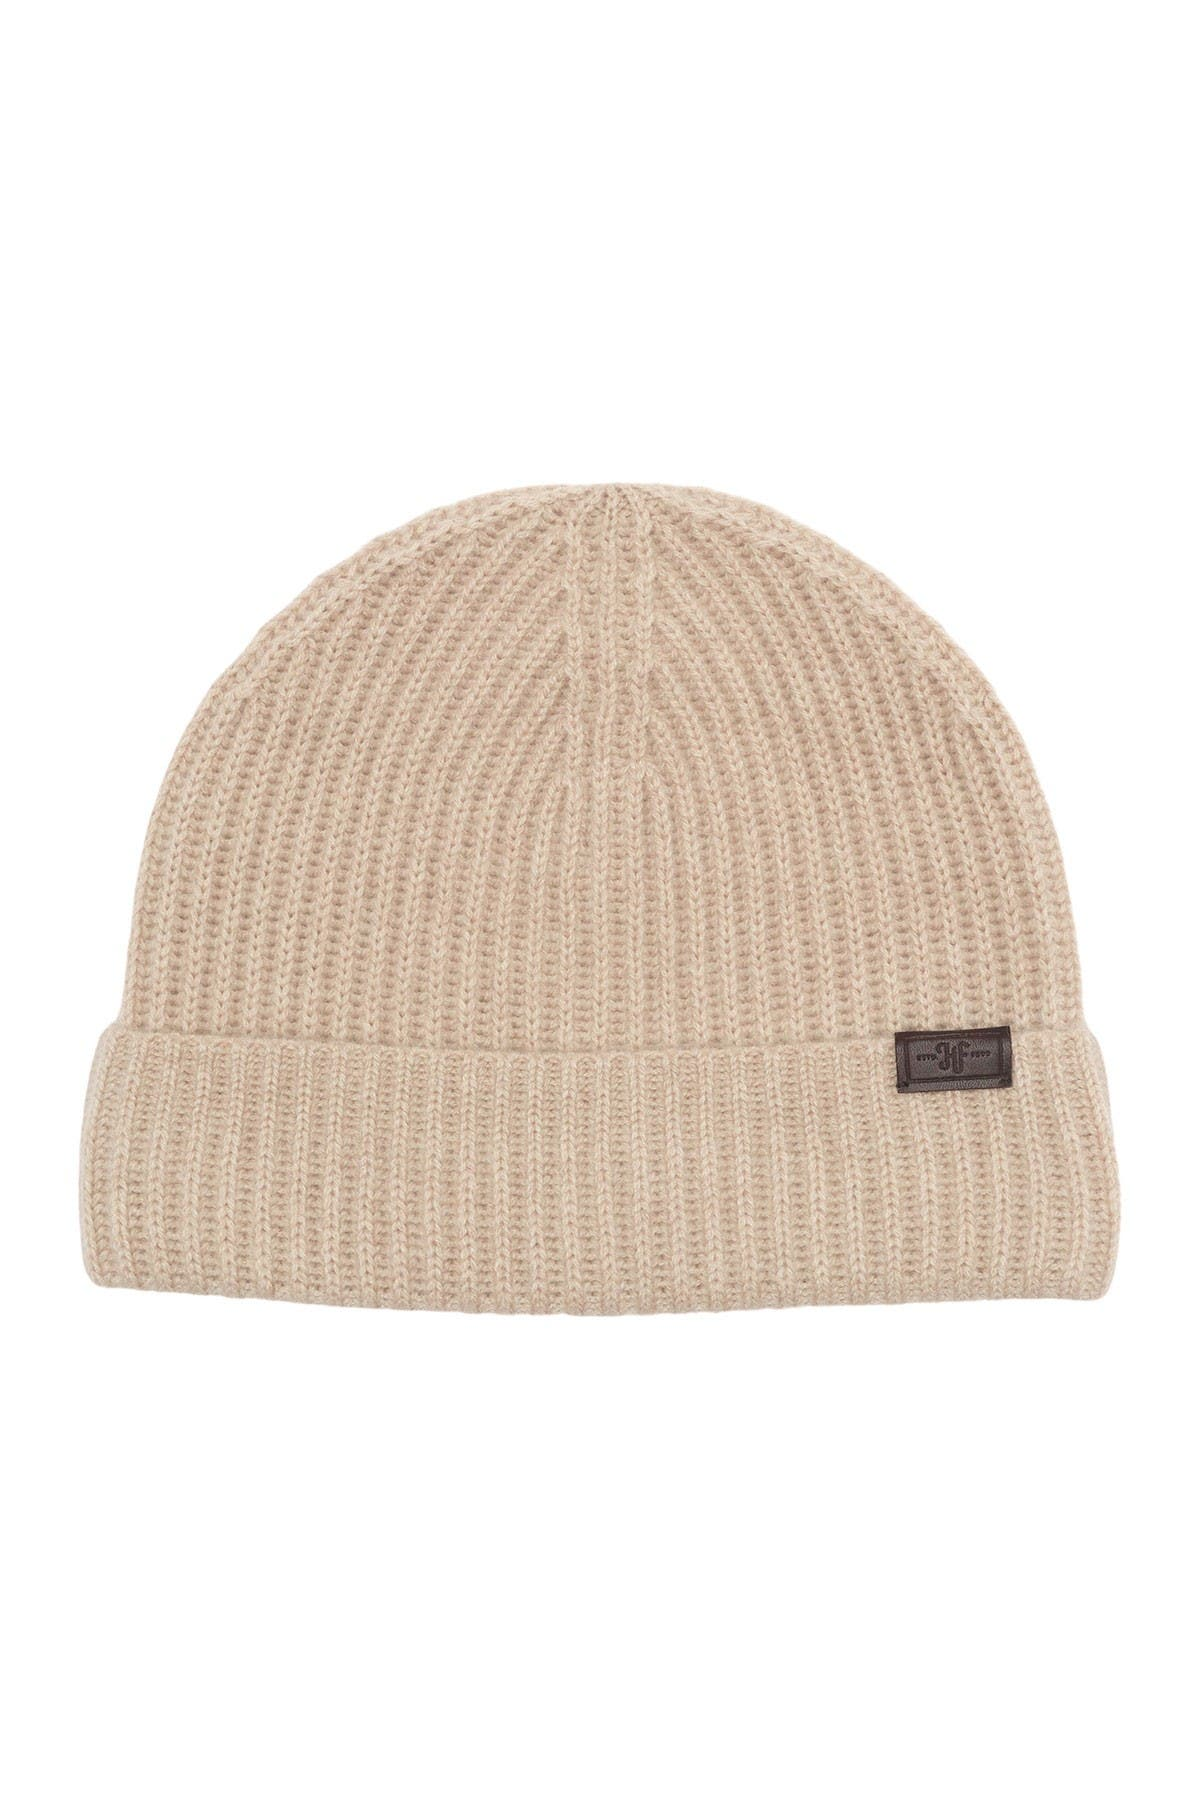 Image of Hickey Freeman Cashmere Knit Cuffed Beanie